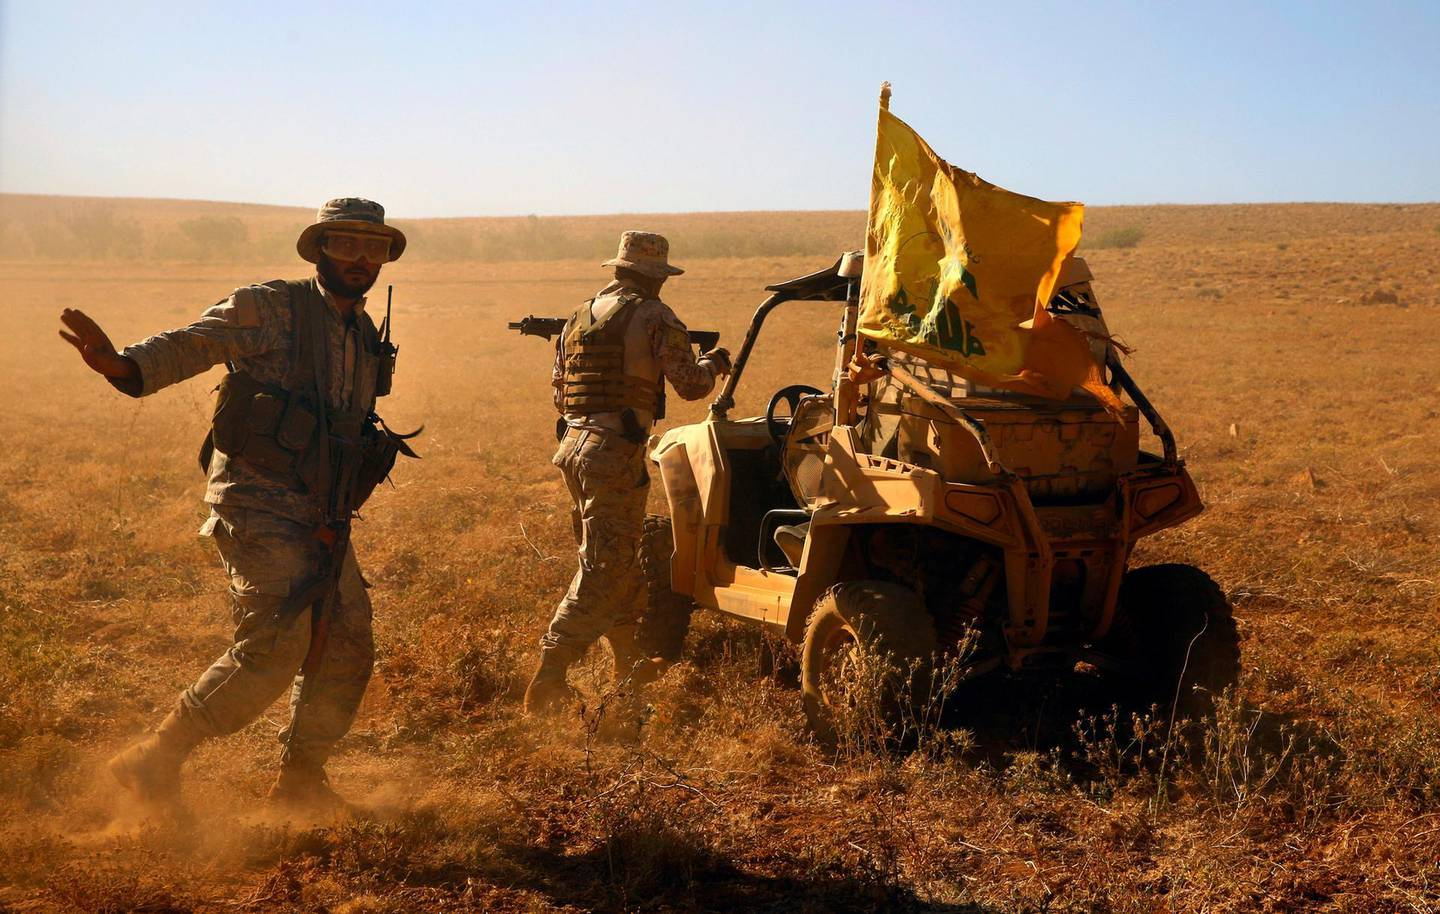 FILE - This July 29, 2017 file photo, Hezbollah fighters stand near a four-wheel motorcycle positioned at the site where clashes erupted between Hezbollah and al-Qaida-linked fighters in Wadi al-Kheil or al-Kheil Valley on the Lebanon-Syria border. The British government will make inciting support for Hezbollah a criminal offense as senior officials accused the Iran-backed organization of destabilizing the Middle East. (AP Photo/Bilal Hussein, File)